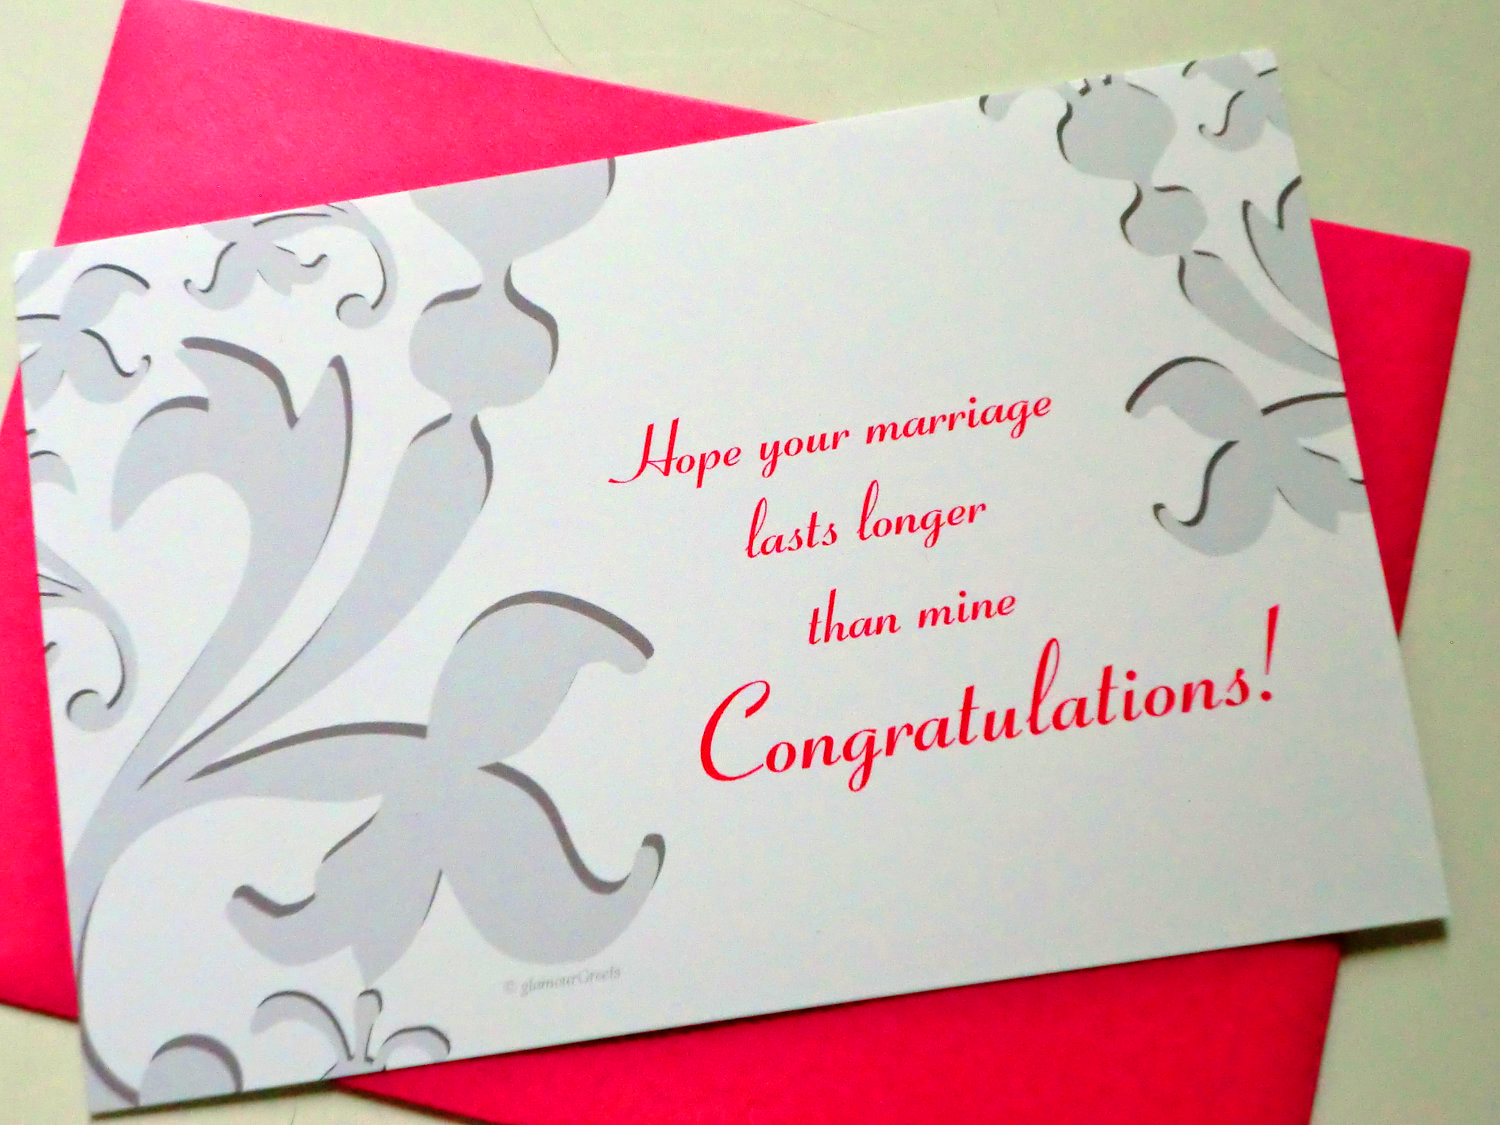 Happy wedding anniversary wishes images cards greetings photos for happy wedding anniversary images cards greetings m4hsunfo